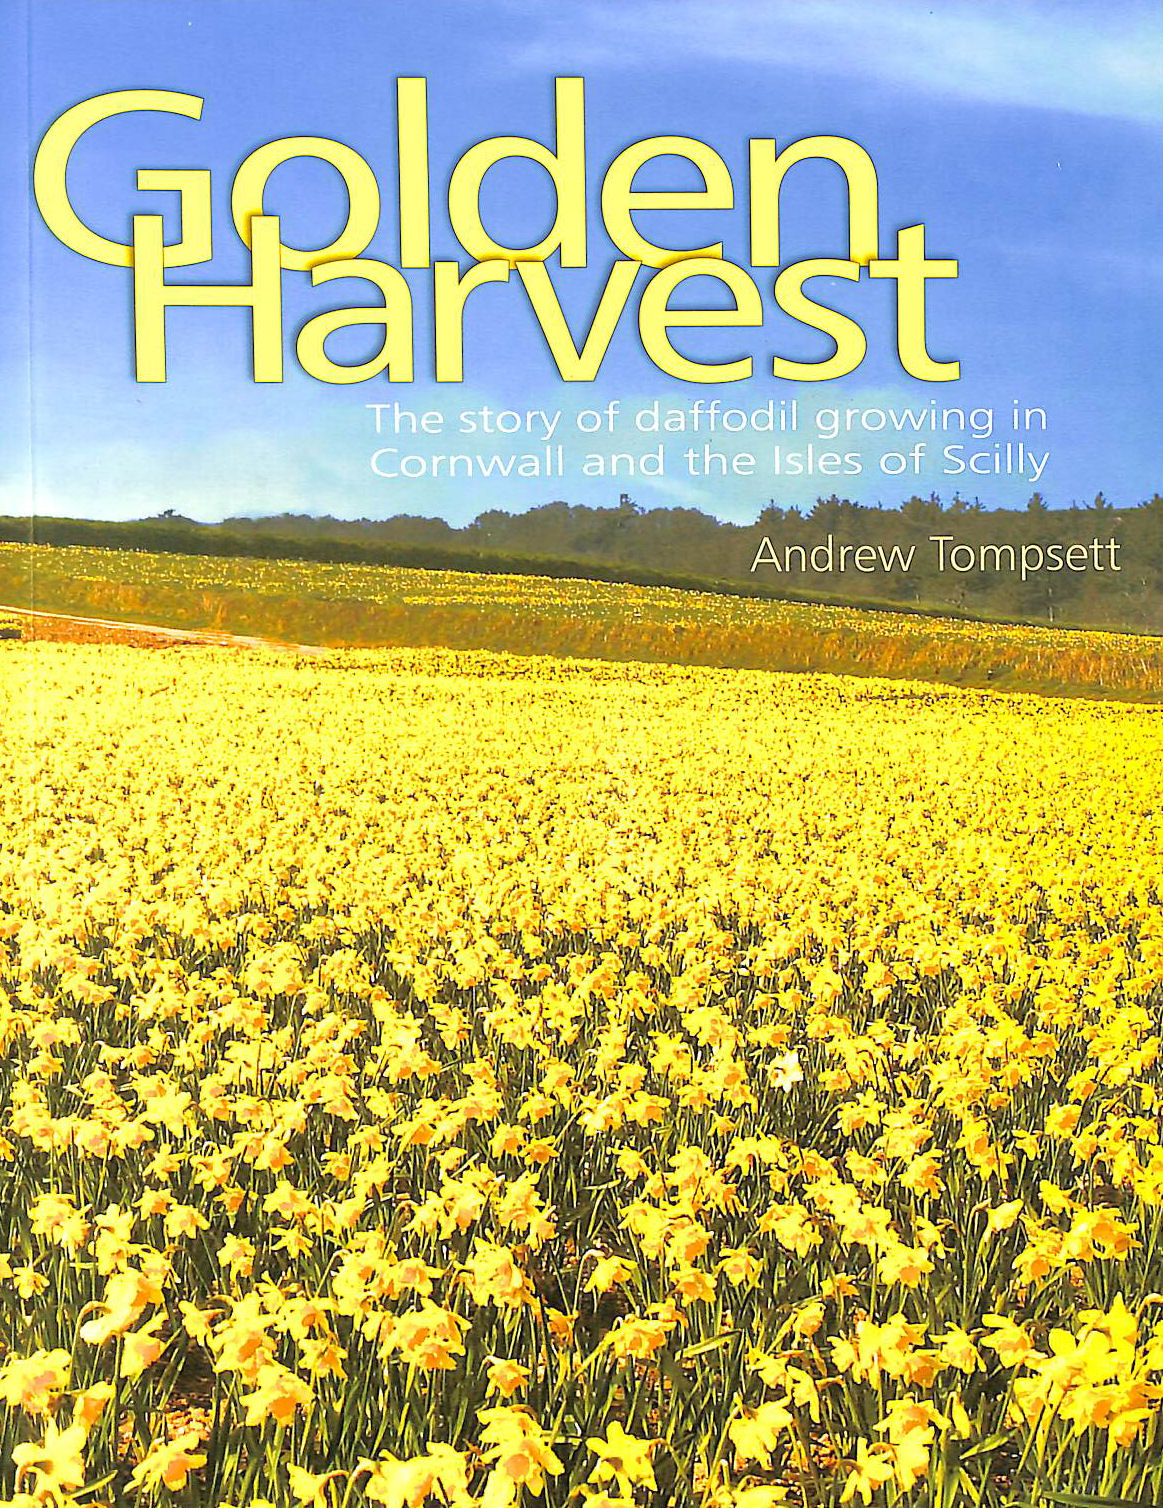 Image for Golden Harvest: The Story of Daffodil Growing in Cornwall and the Isles of Scilly